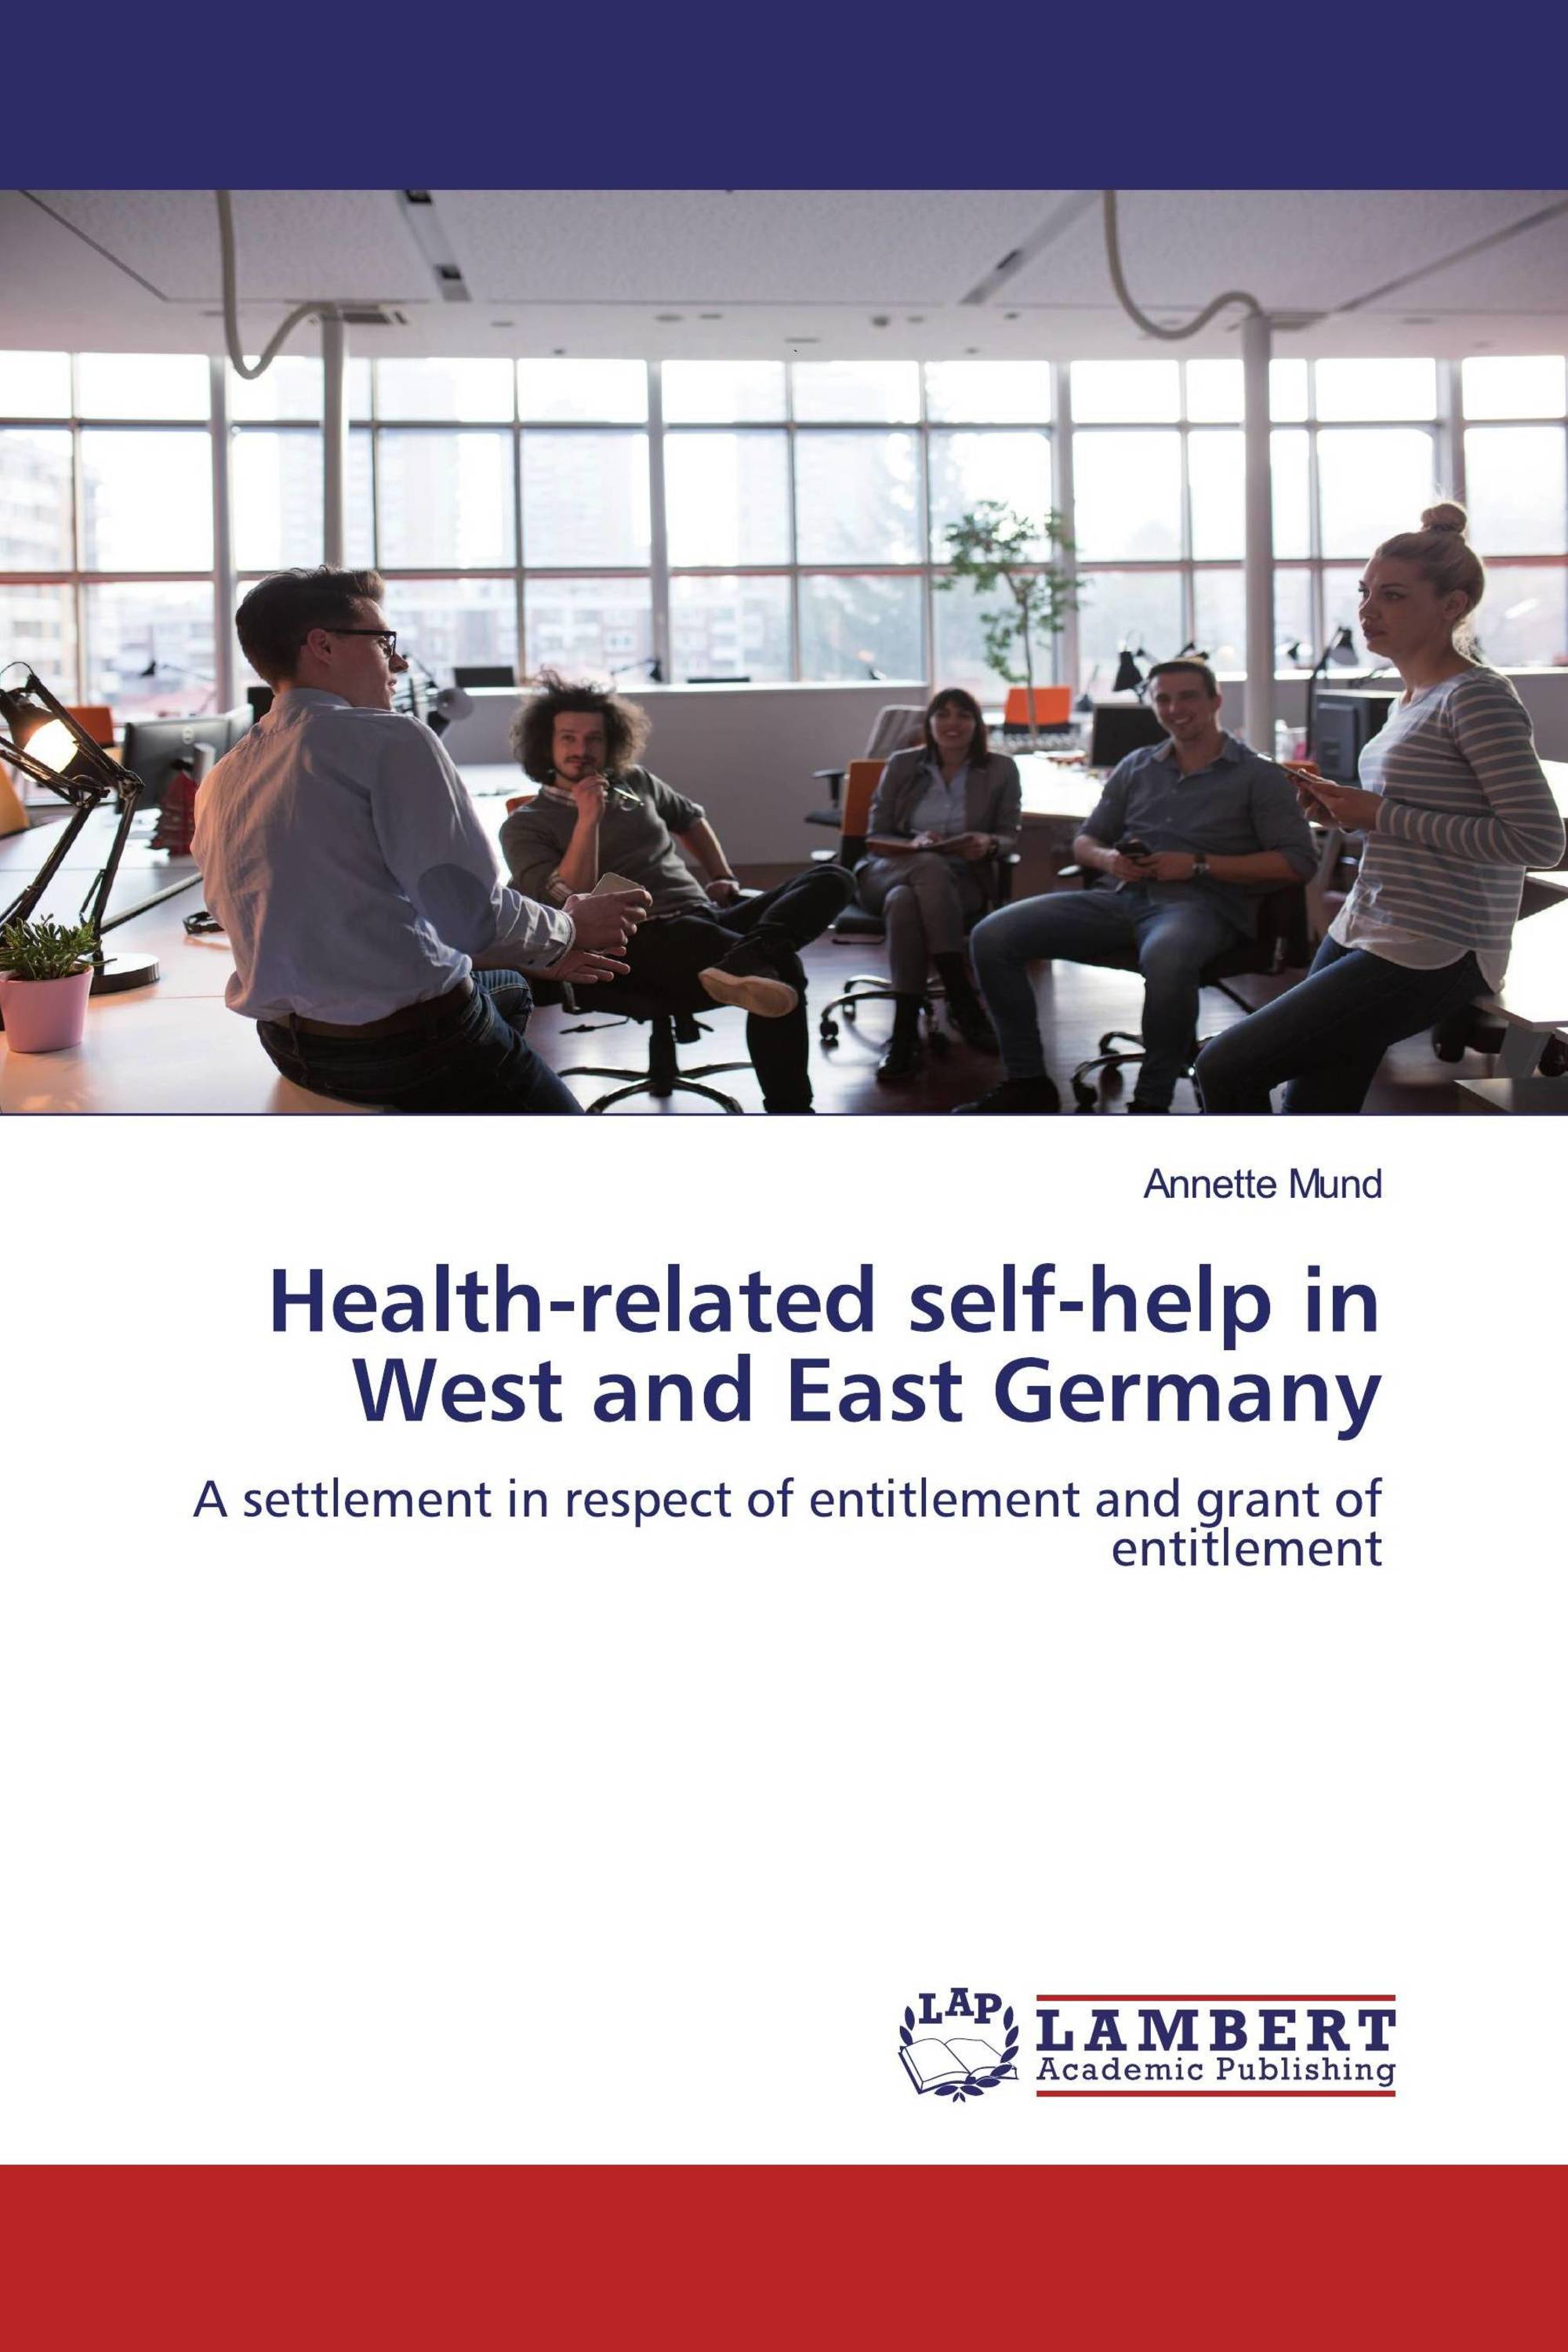 Health-related self-help in West and East Germany